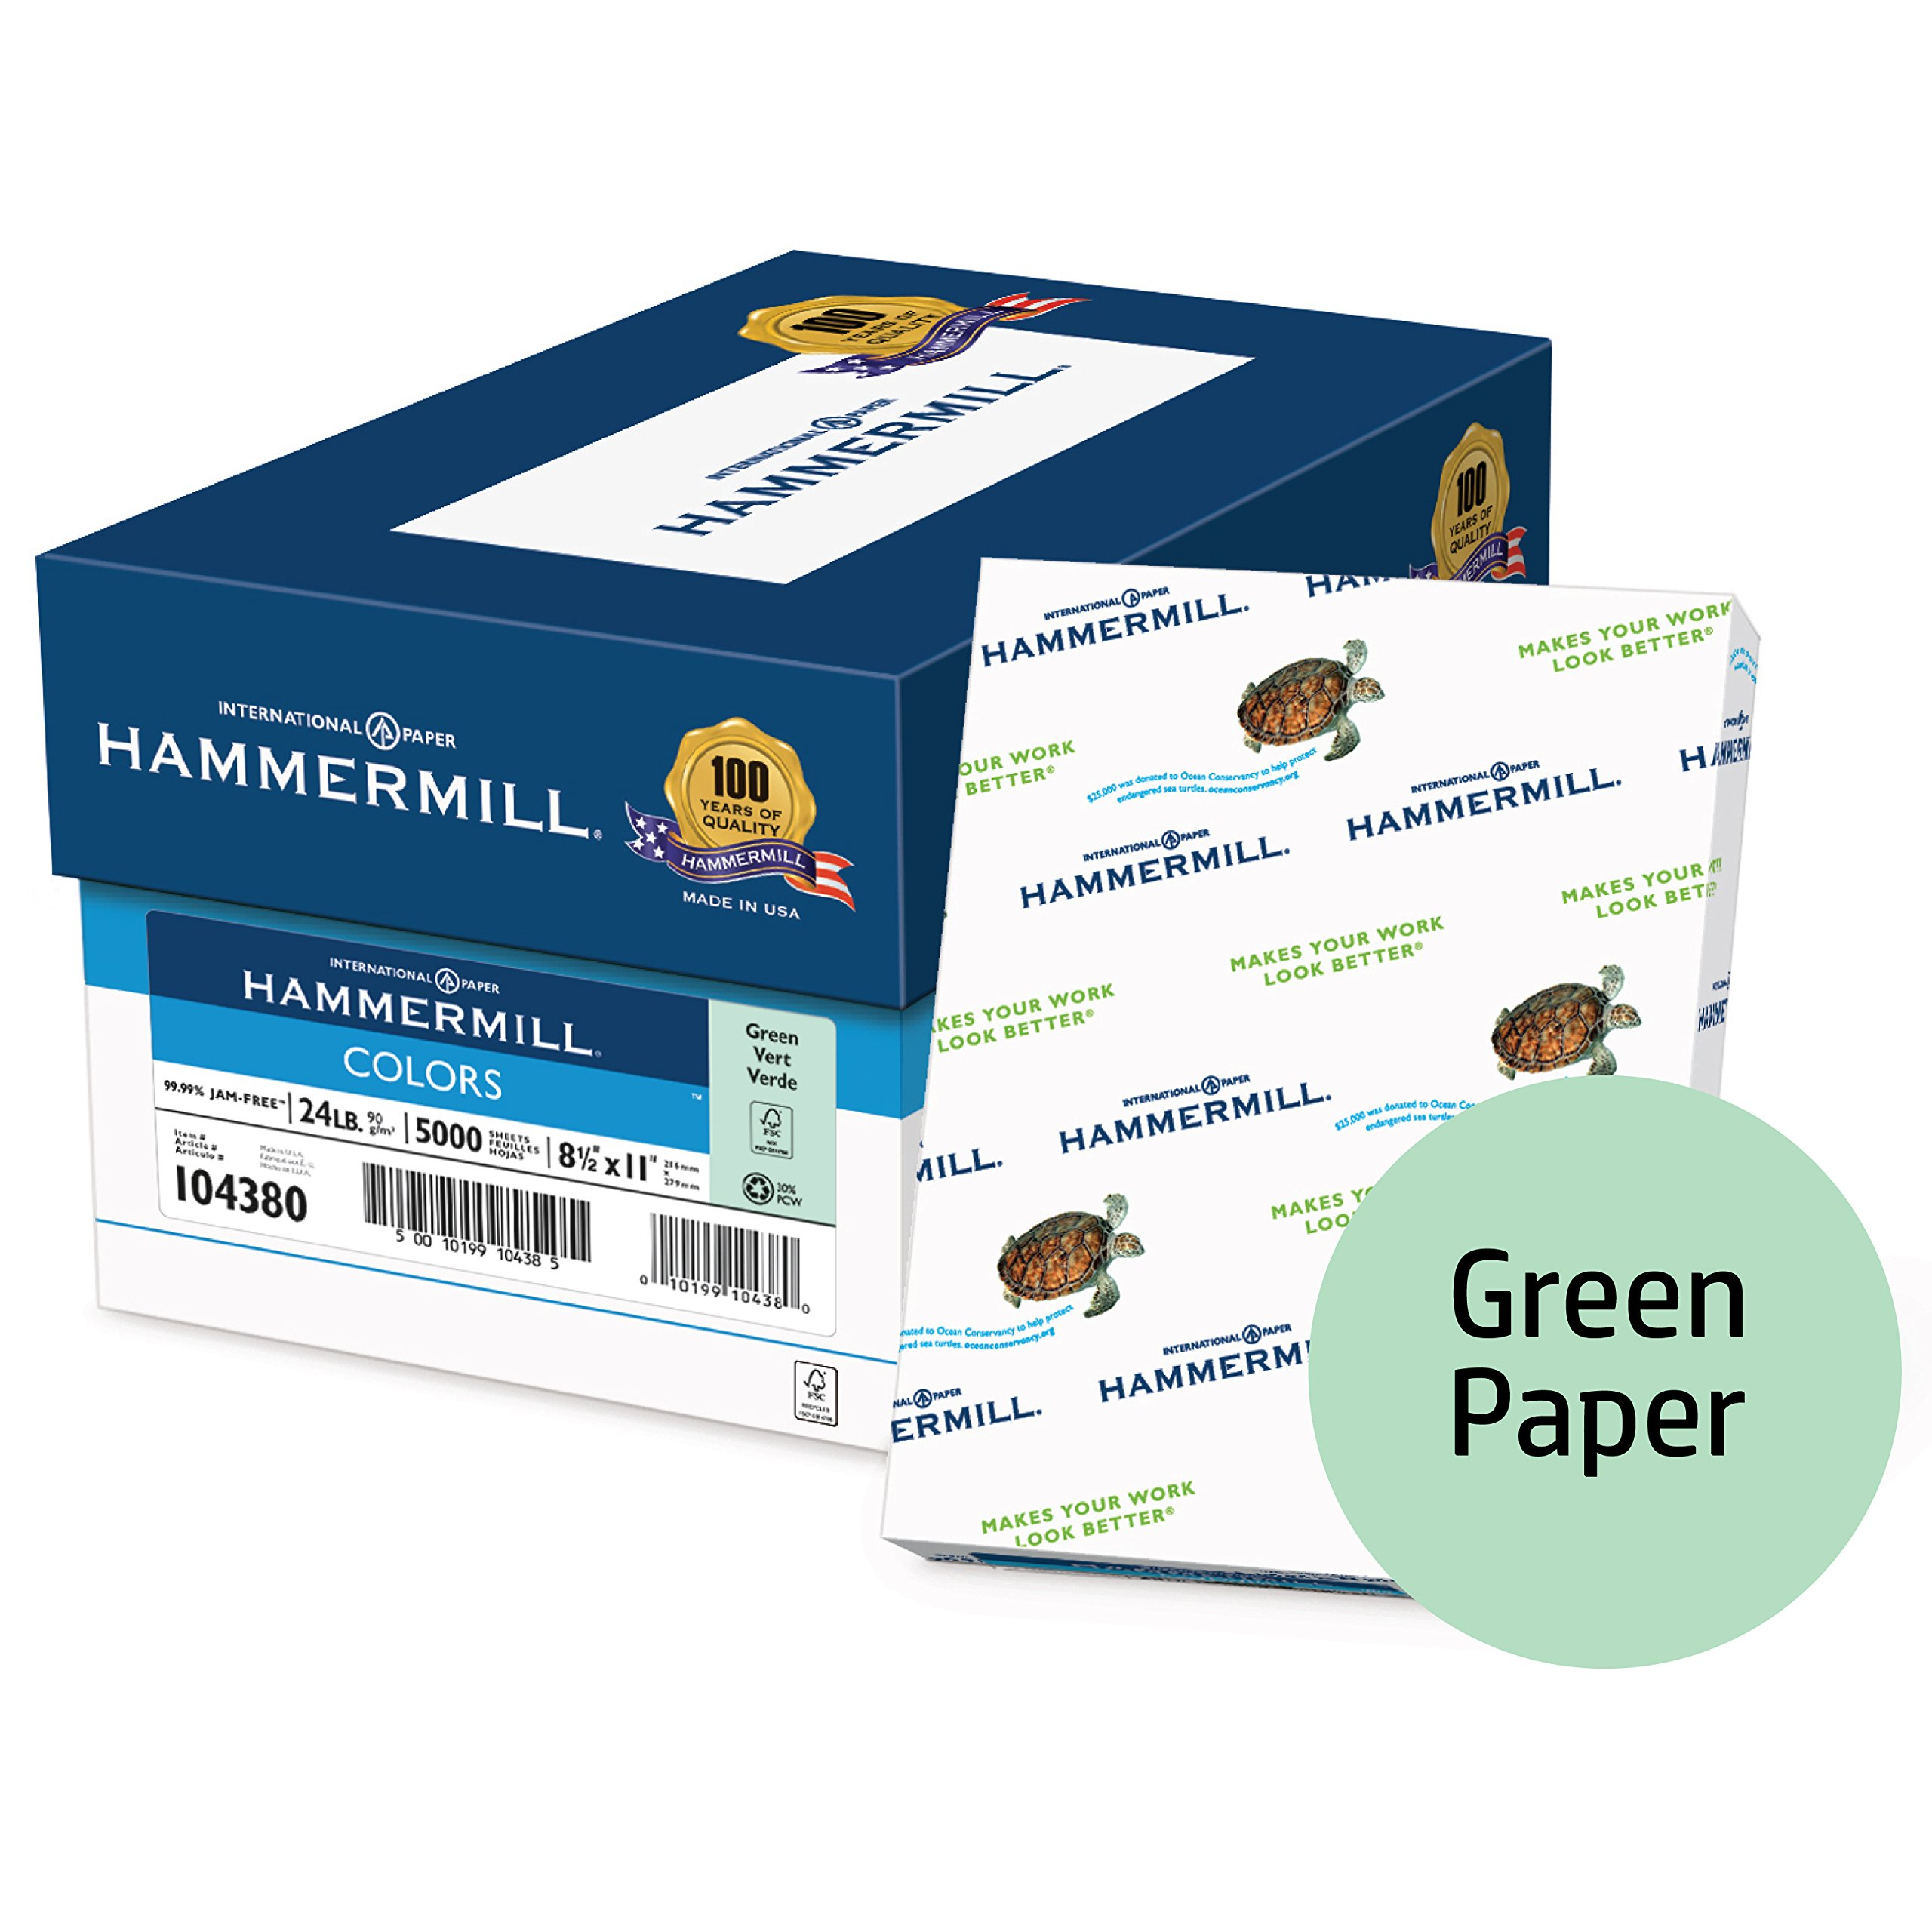 Hammermill Colored Paper, Green Printer Paper, 24lb, 8.5x11 Paper, Letter Size, 5000 Sheets / 10 ream Case, Pastel Paper, Colorful Paper (104380C)